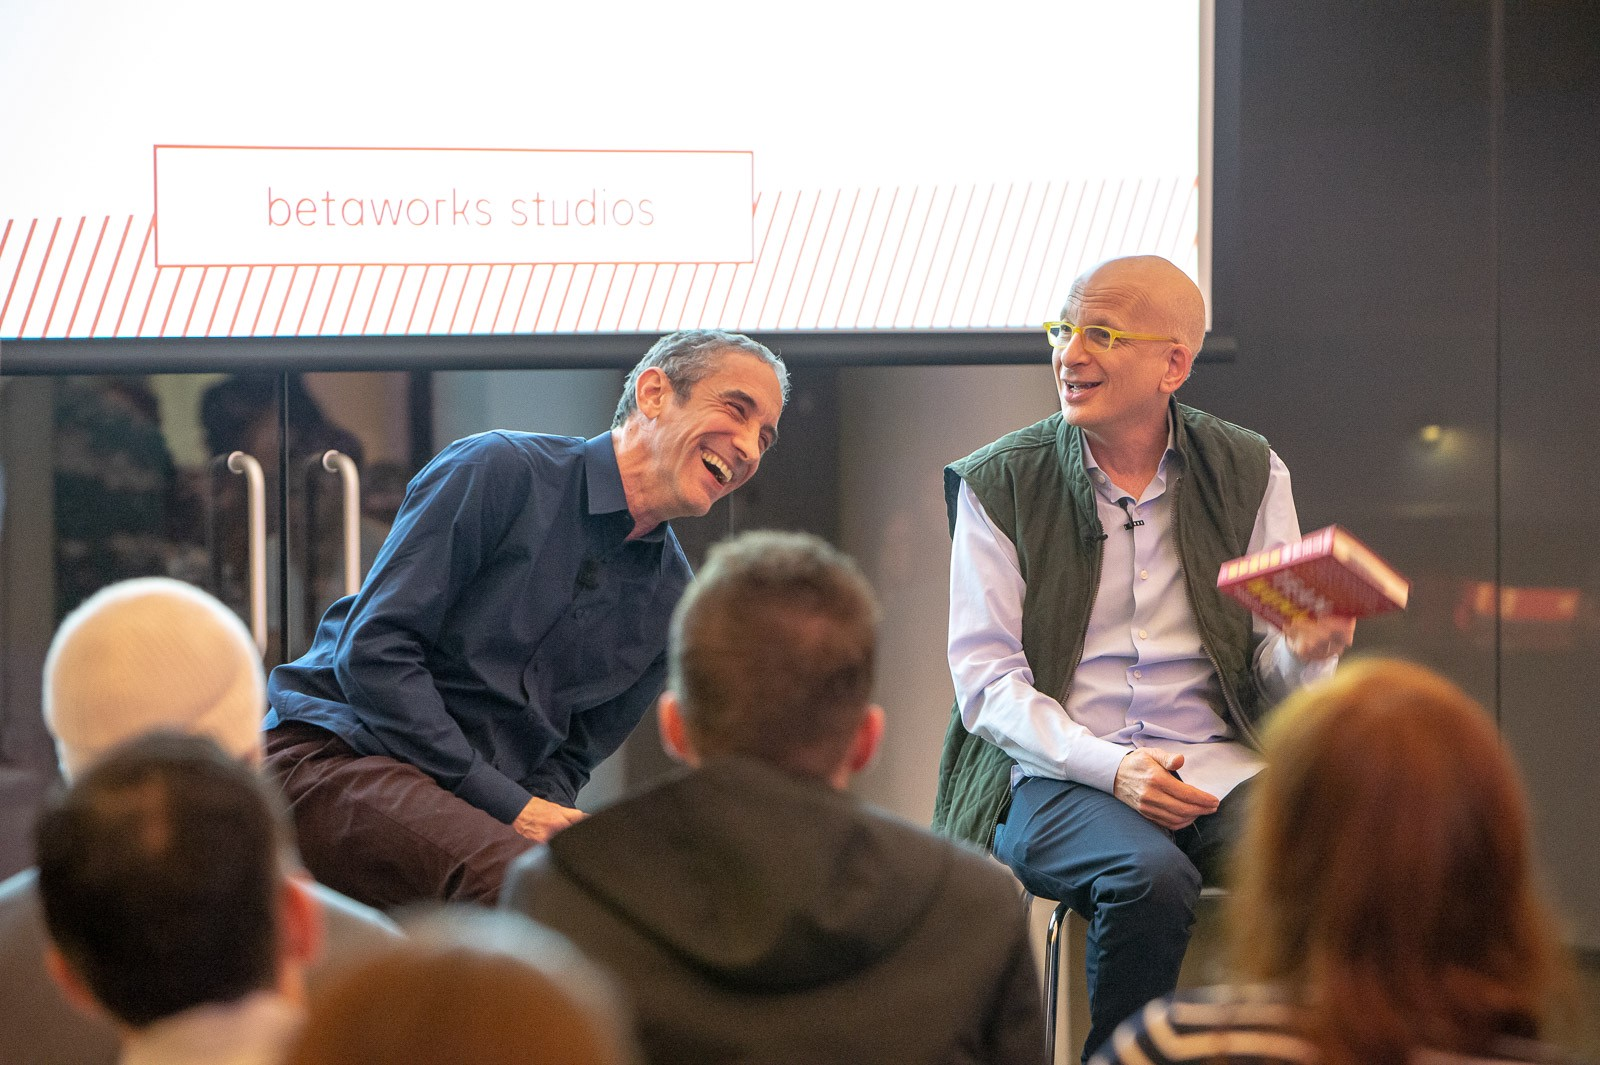 'On Reclaiming Human Connection' with Seth Godin